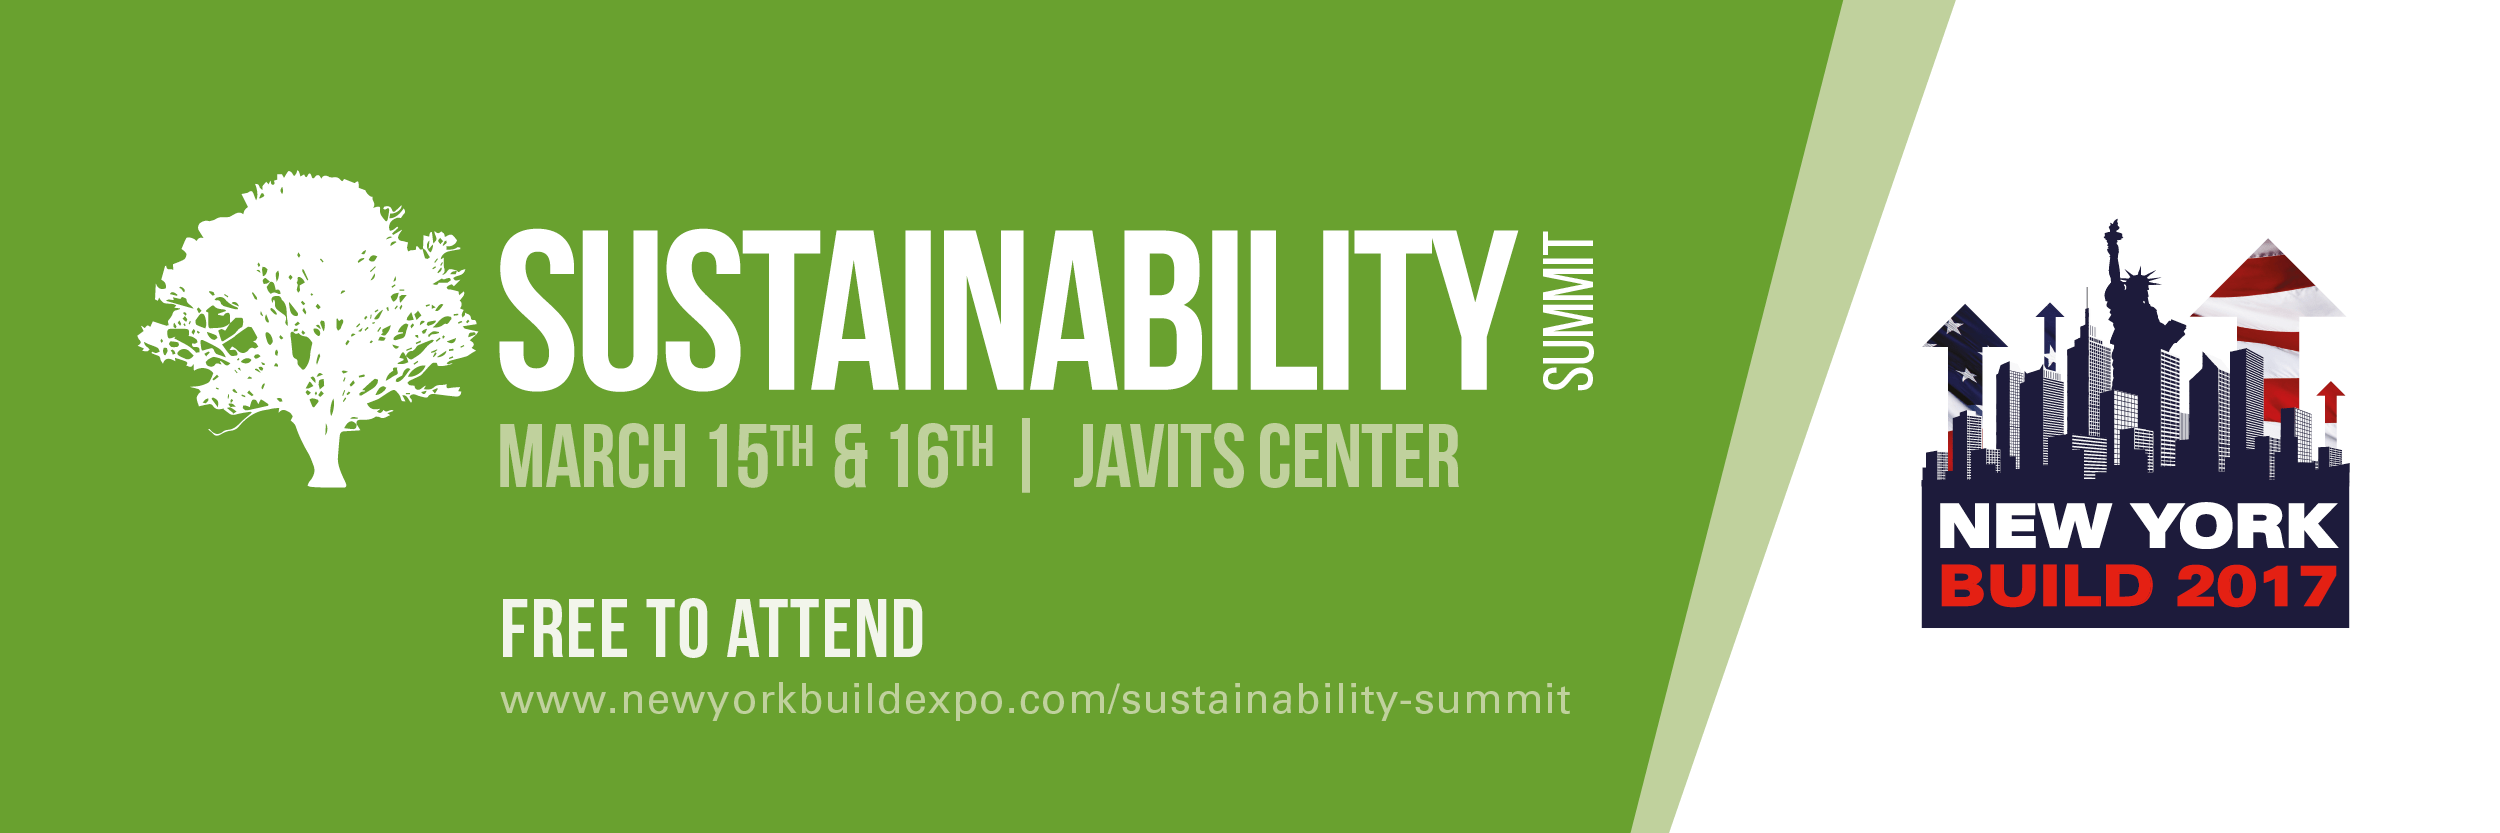 sustainability-banner